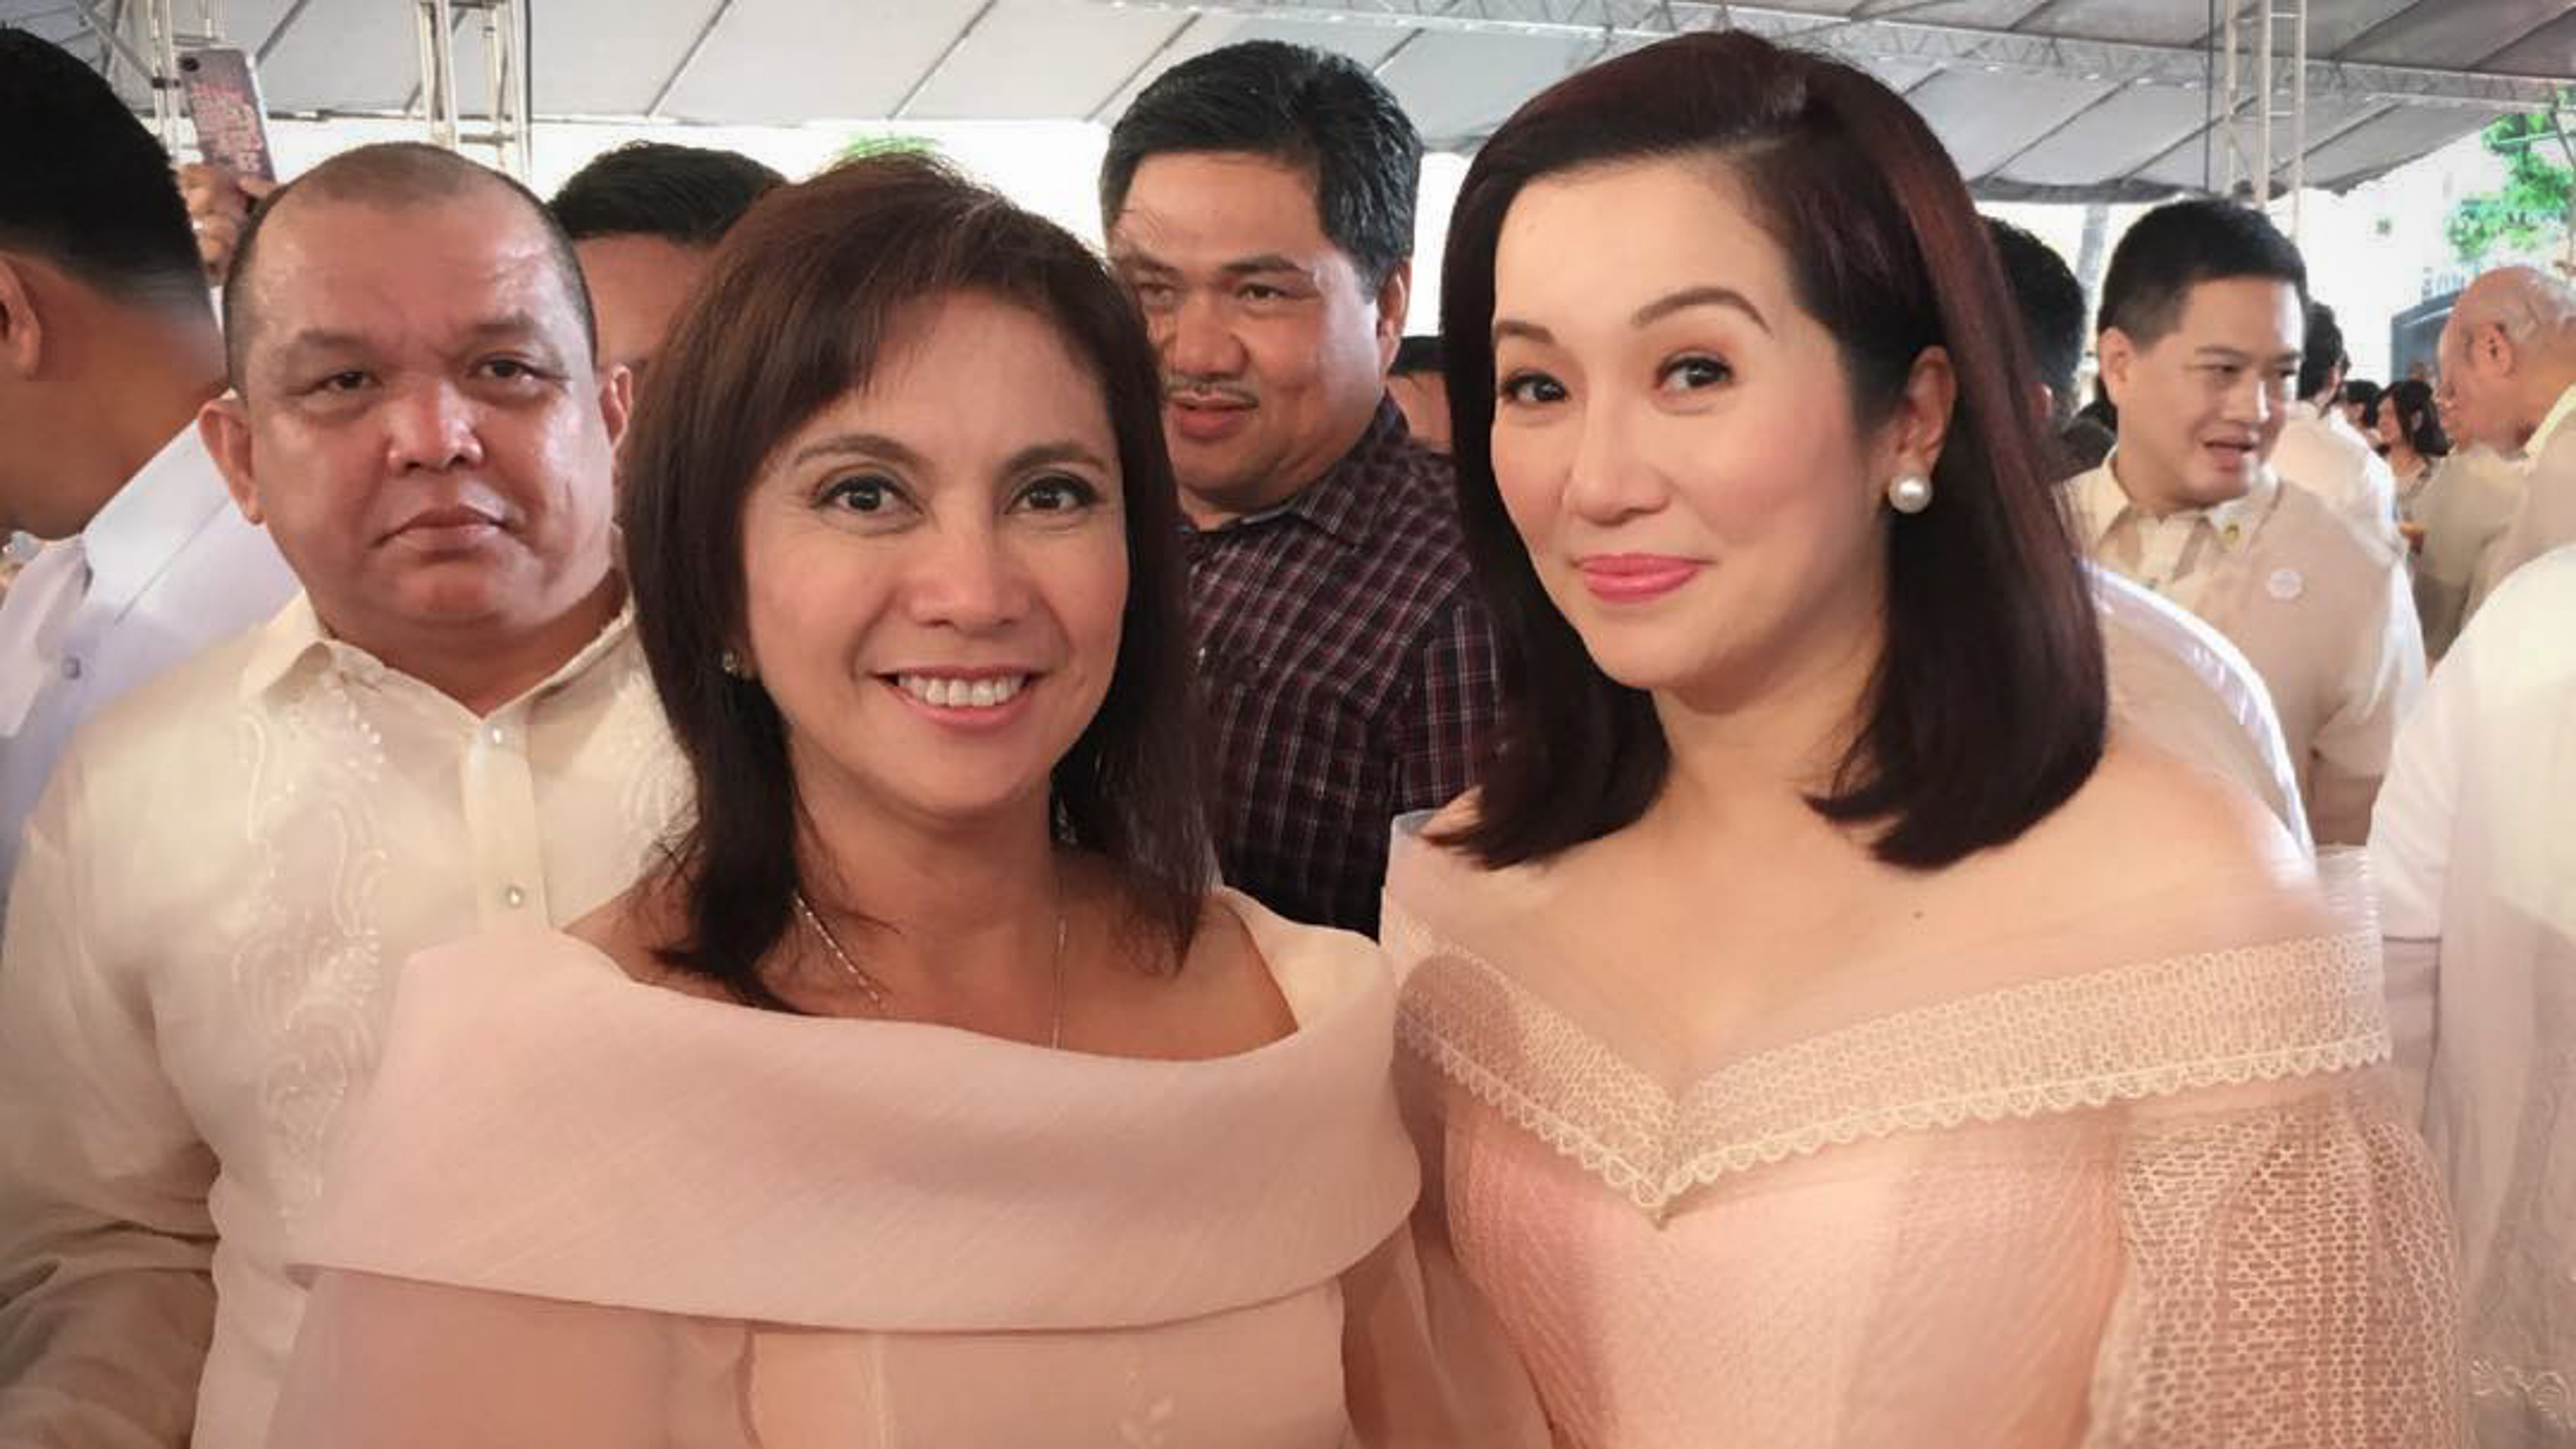 IN PHOTOS: What VP Leni, stars wore at inauguration